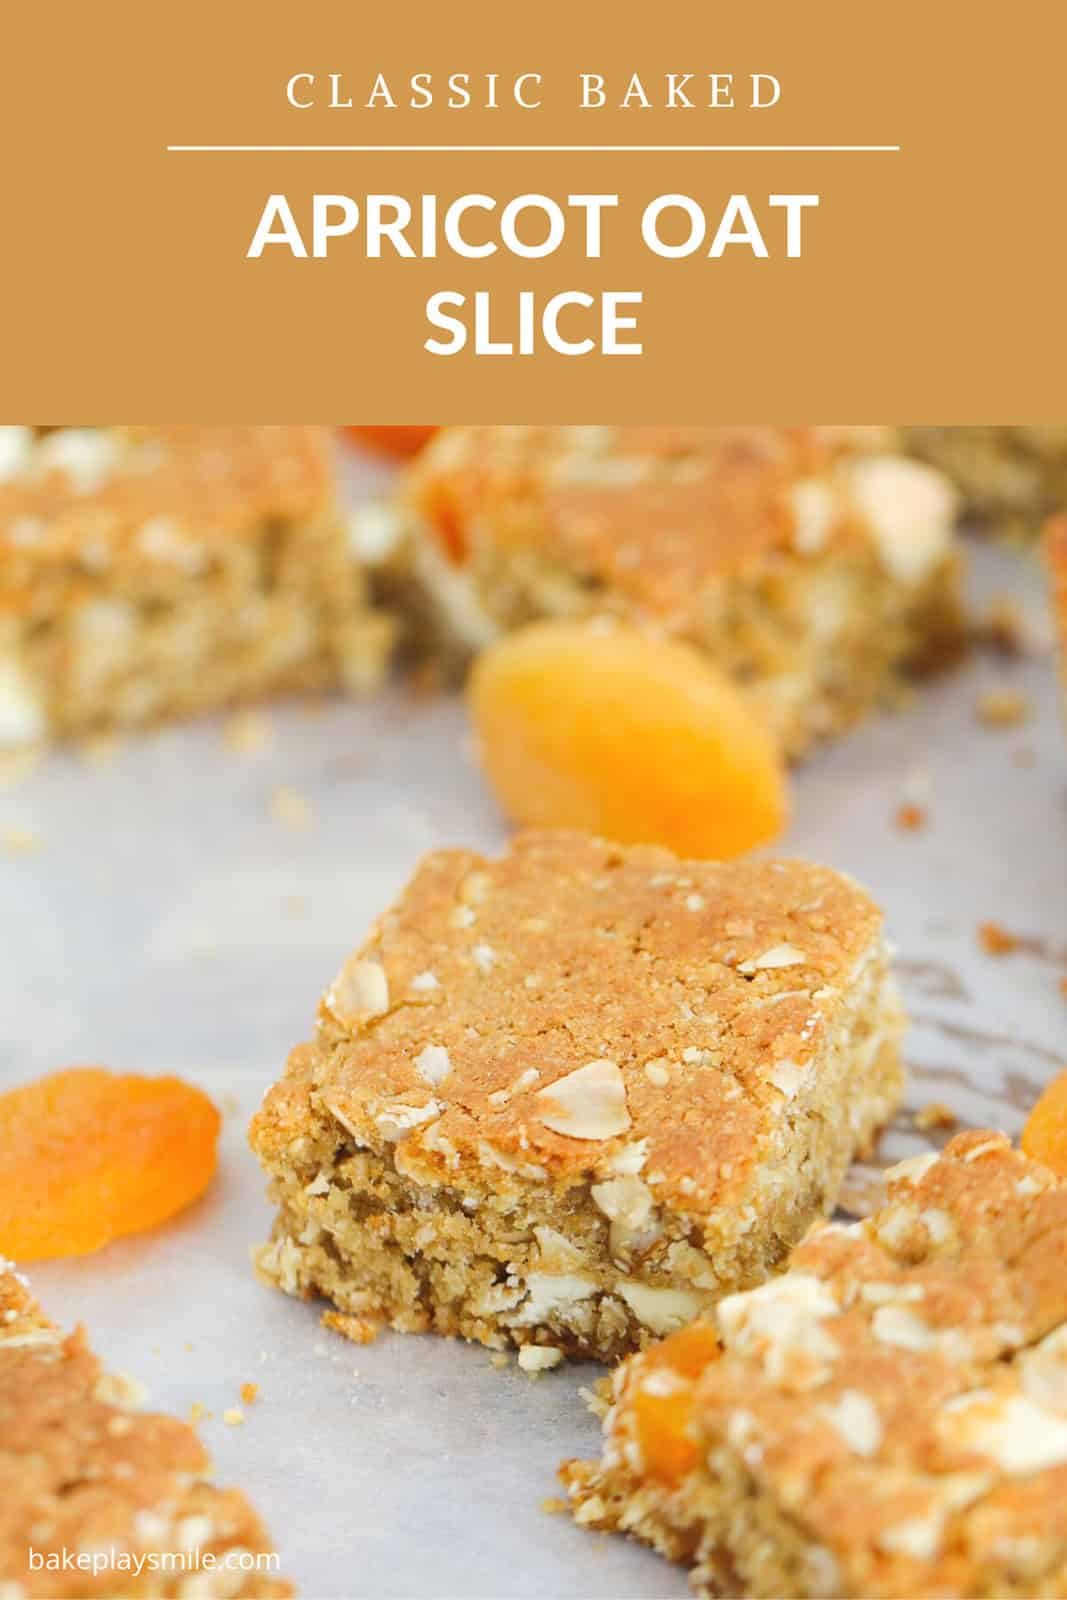 Pieces of apricot oat slice and some dried apricots